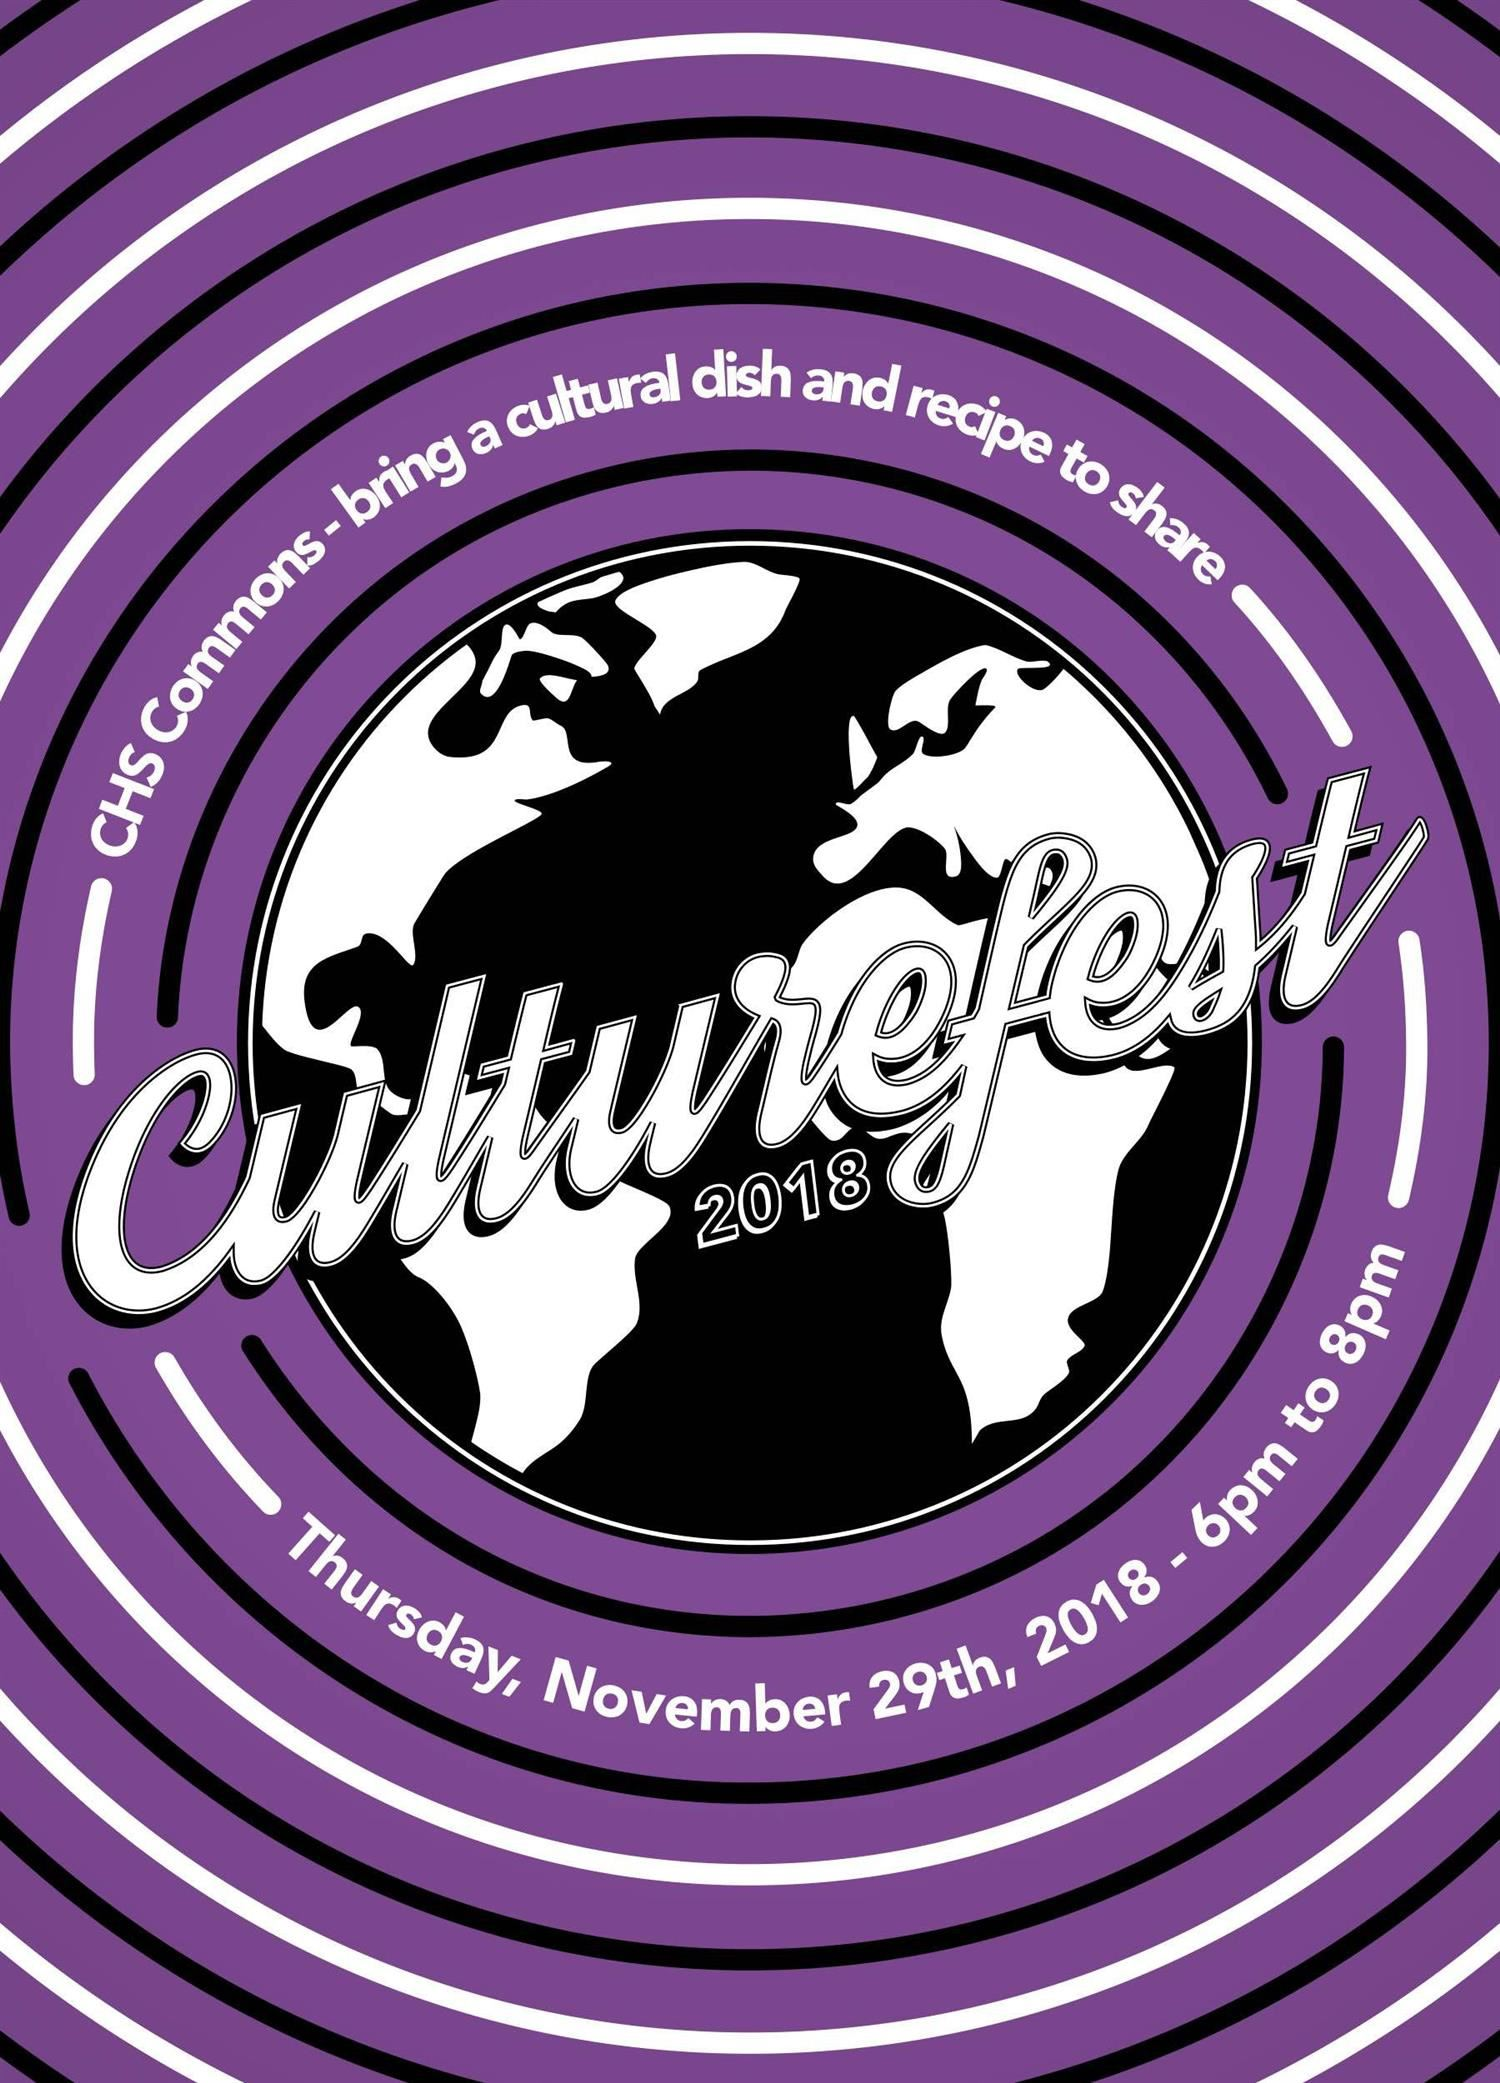 Culture Fest flyer - chs Commons bring cultural dish and recipe to share Thurs Nov 29th 2018 6-8 pm